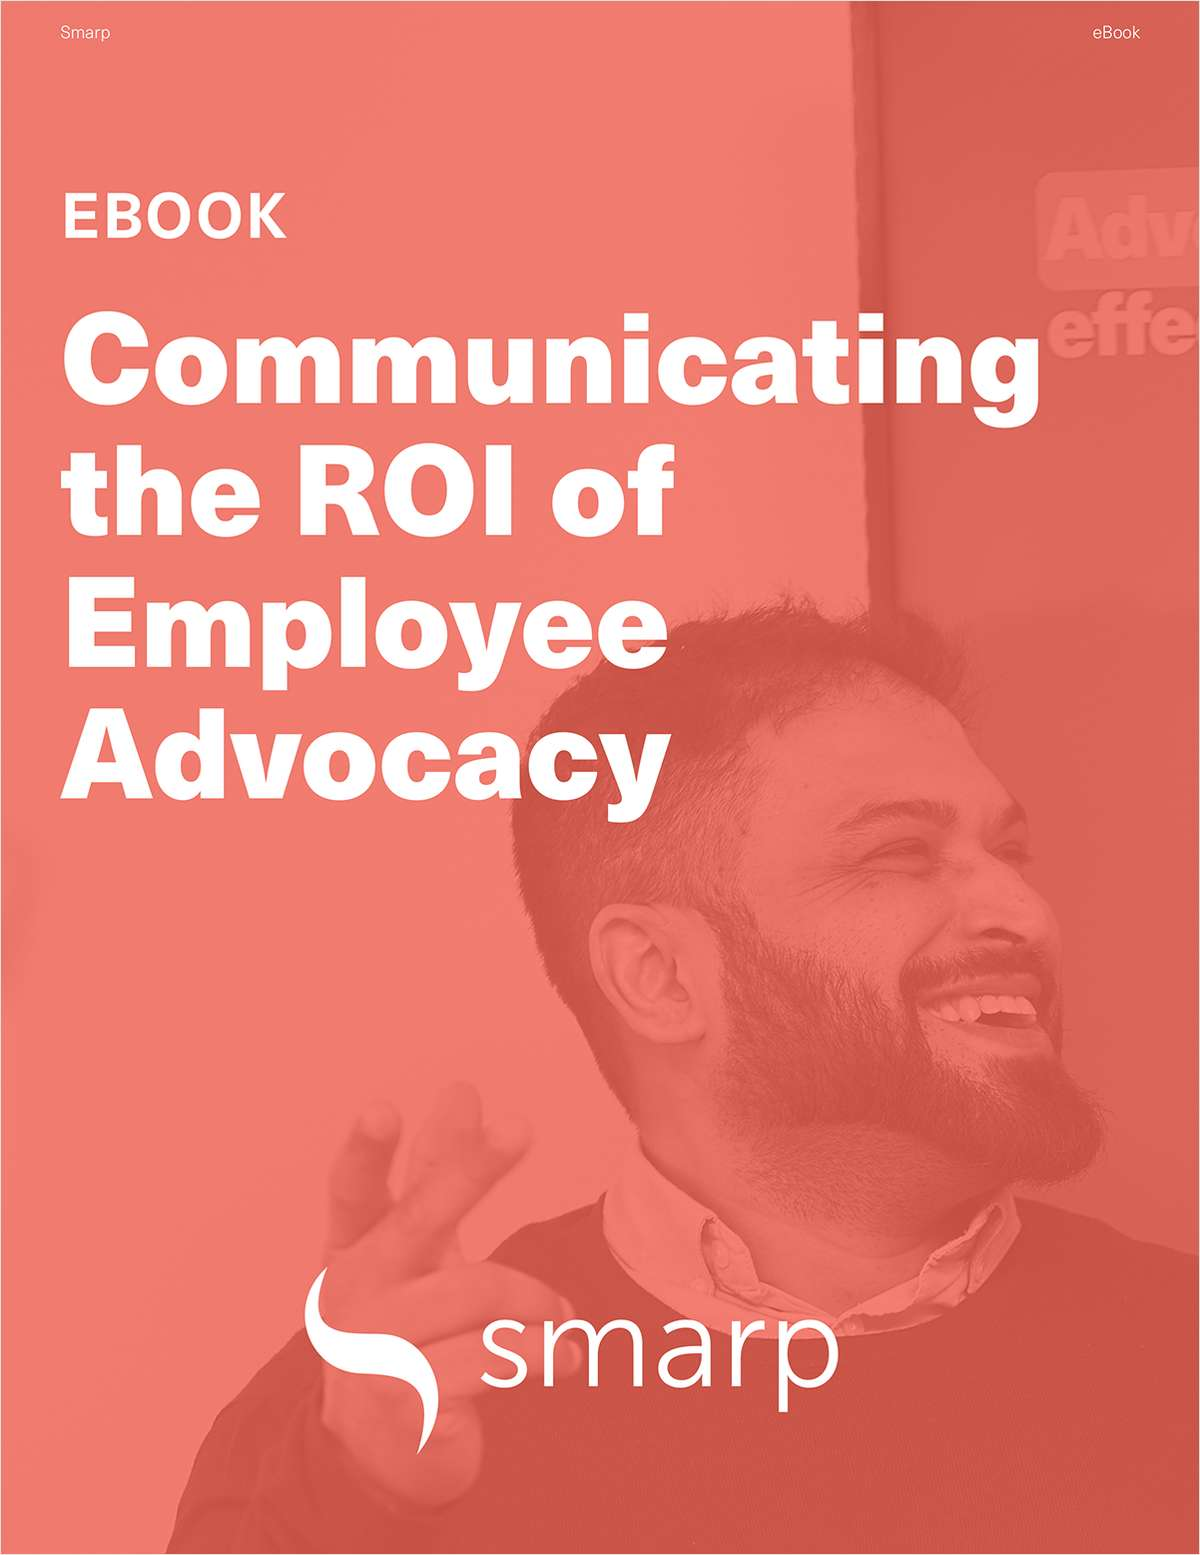 eBook: Communicating the ROI of Employee Advocacy